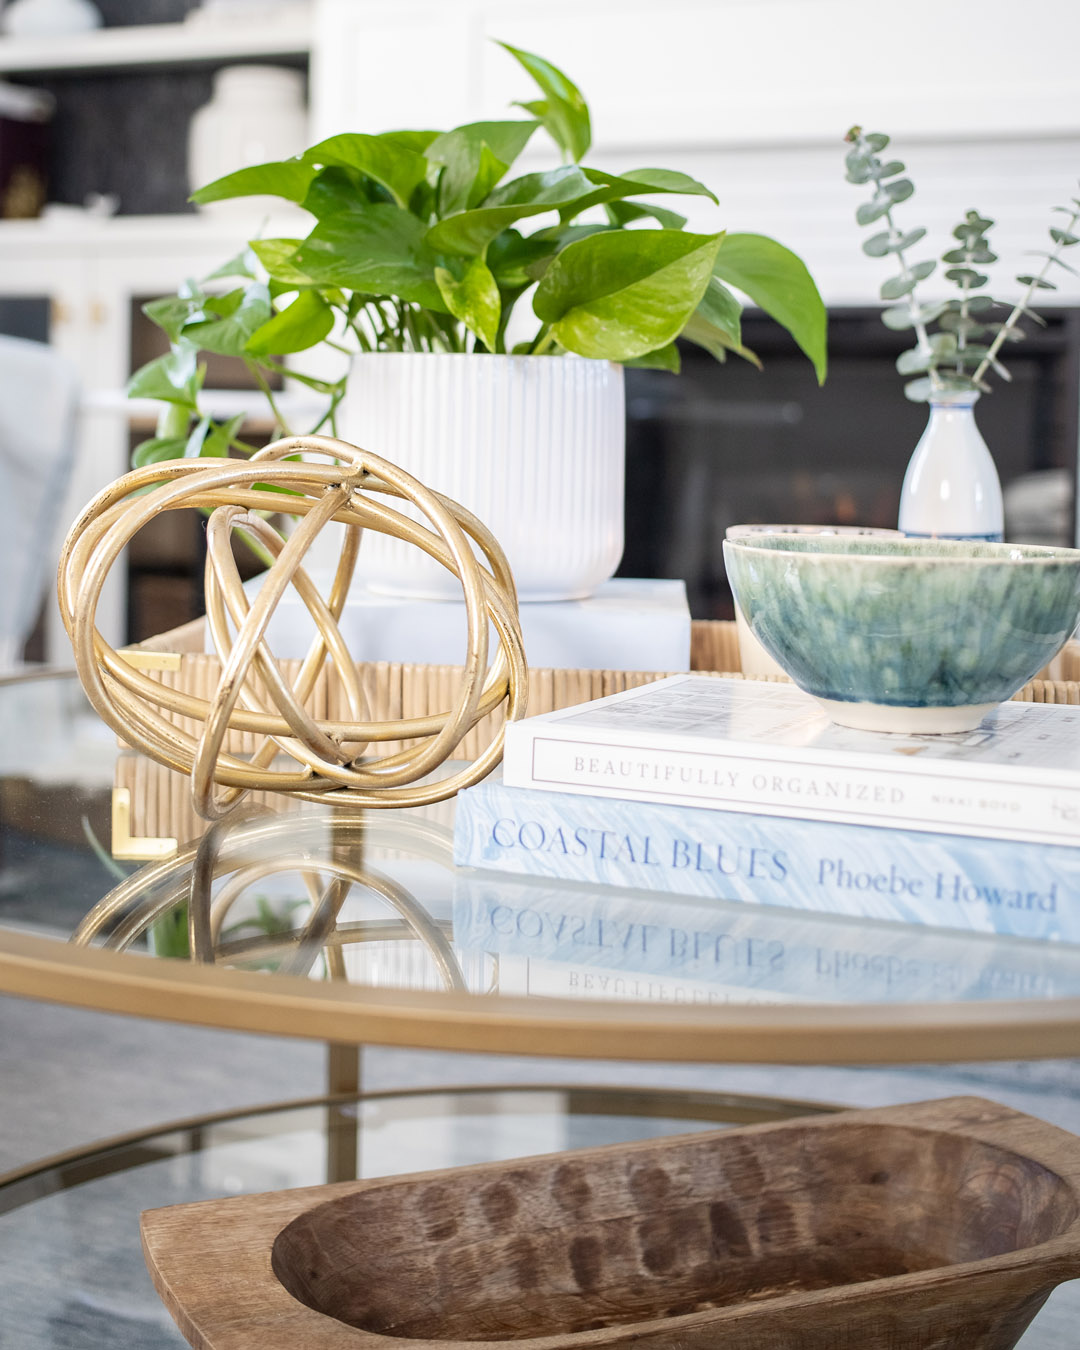 Today I thought I'd share a little peek at what our living room looks like right now and maybe give you a few ideas for styling a small round coffee table.